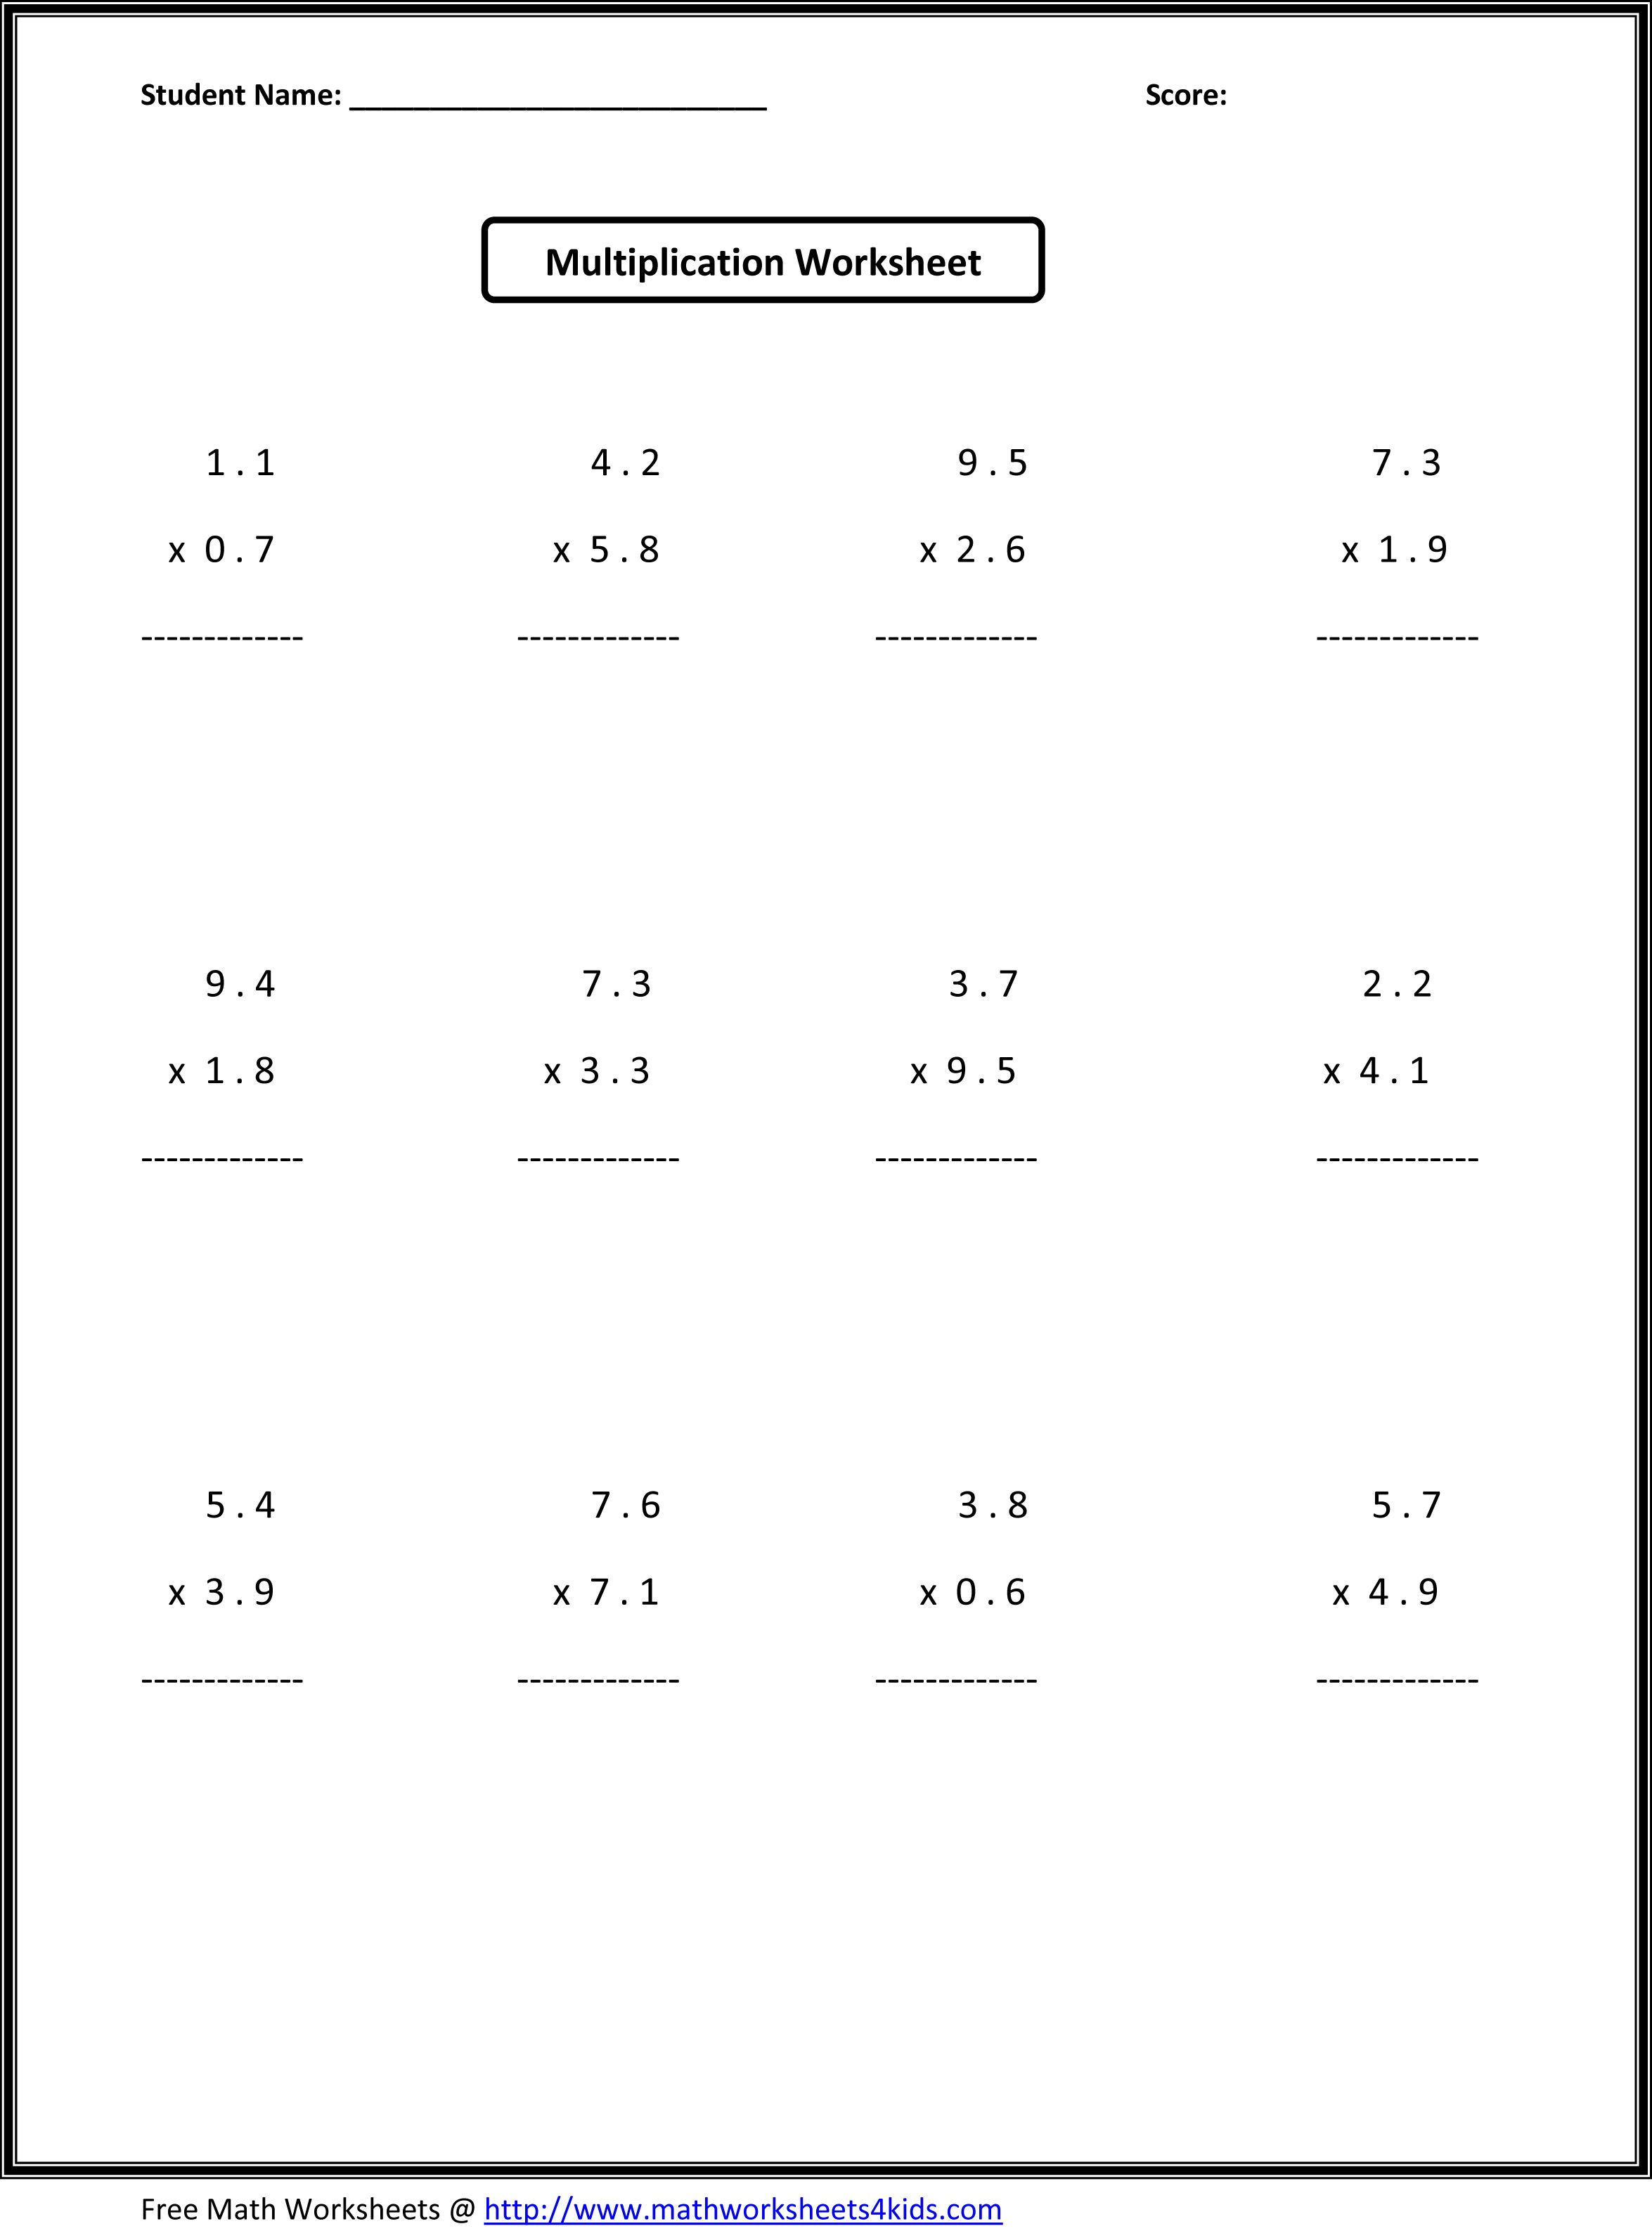 7th grade math worksheets – Free 5th Grade Math Worksheets with Answer Key